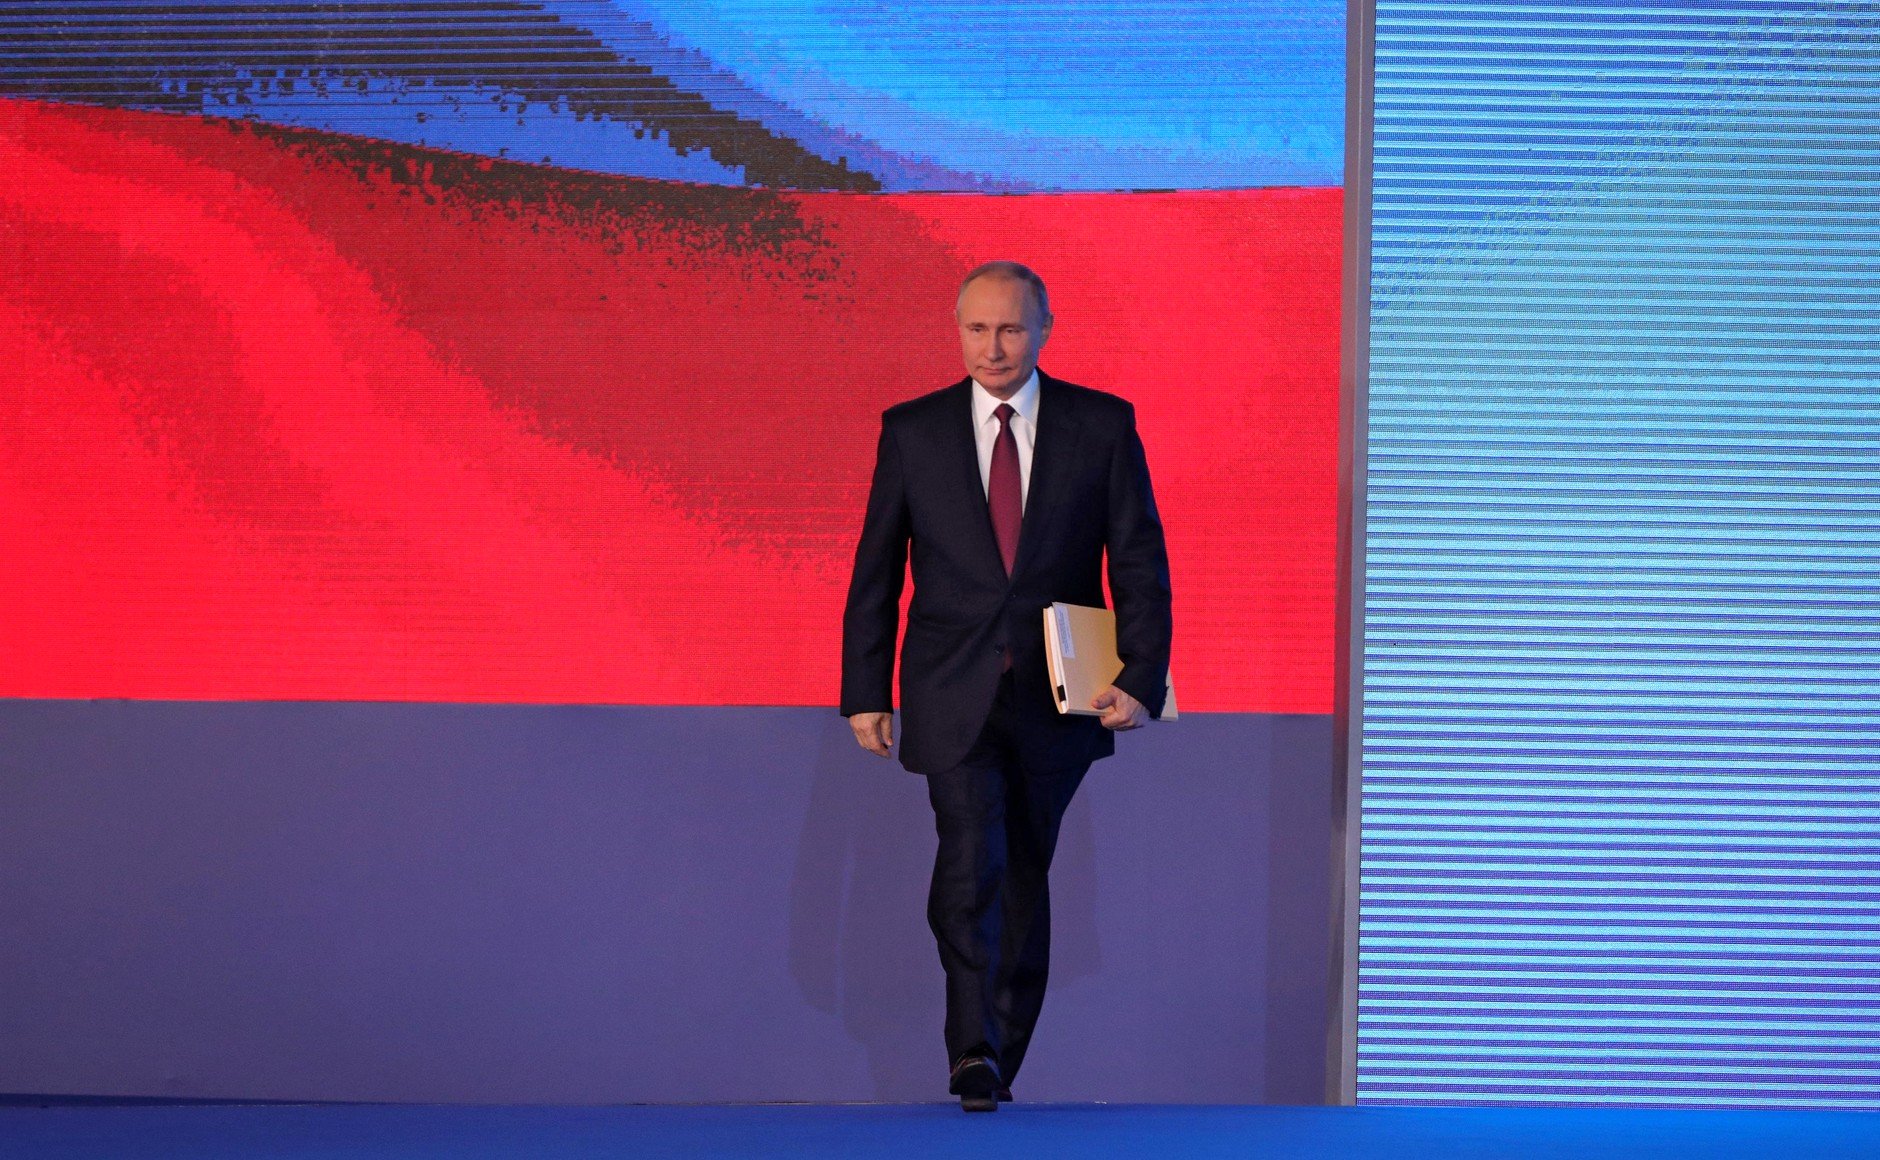 It's Okay to Constructively Criticize Russia, Even President Putin